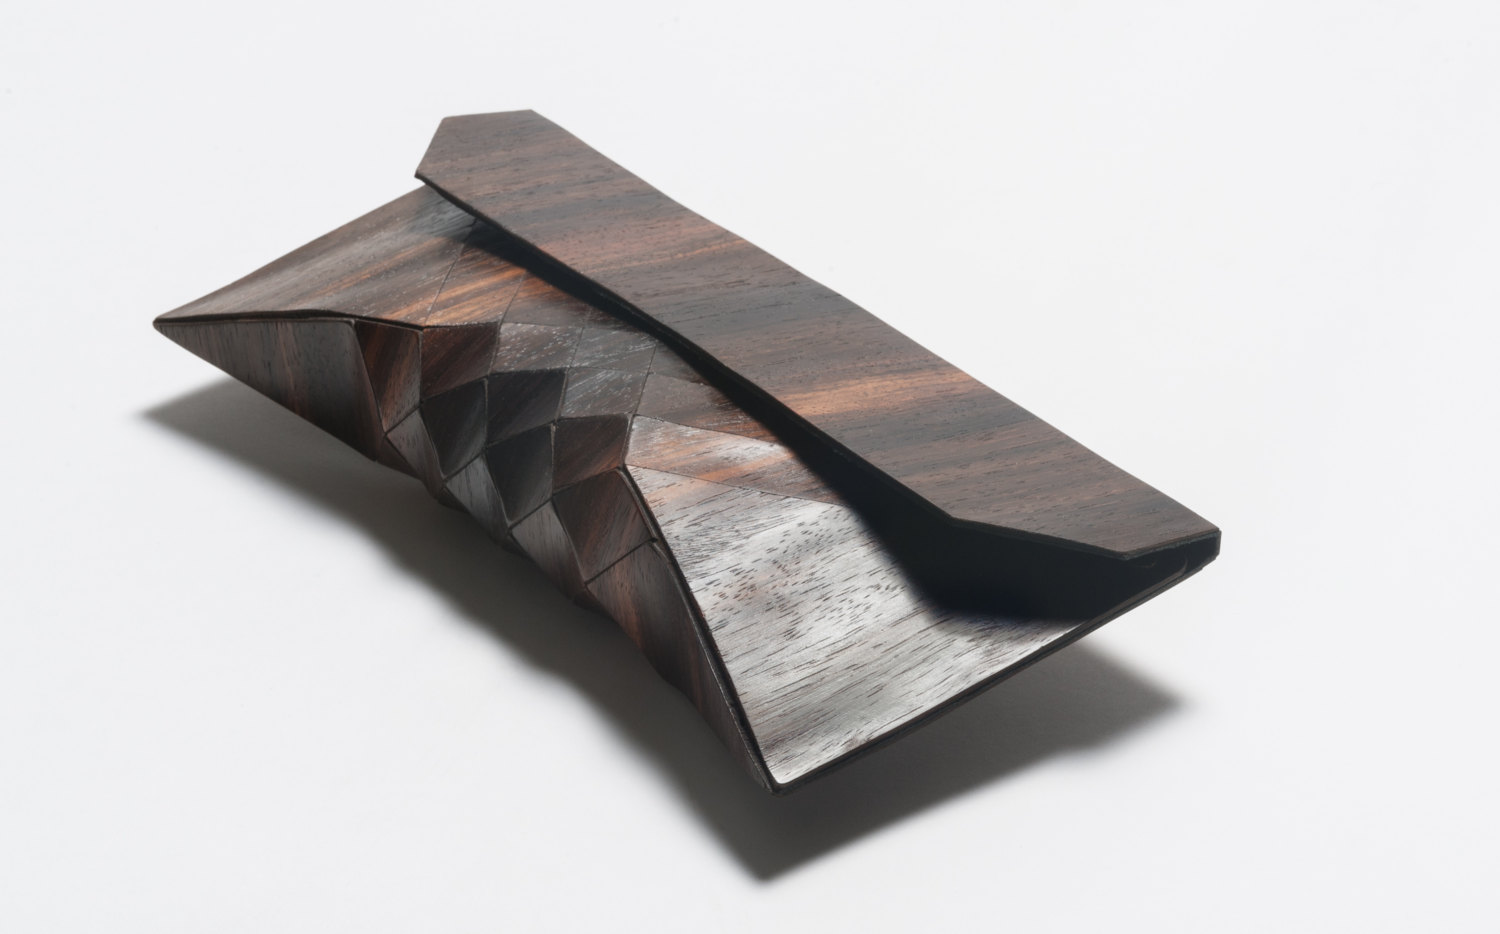 awesome-design-ideas-Wood-Clutch-TeslerMendelovitch-2